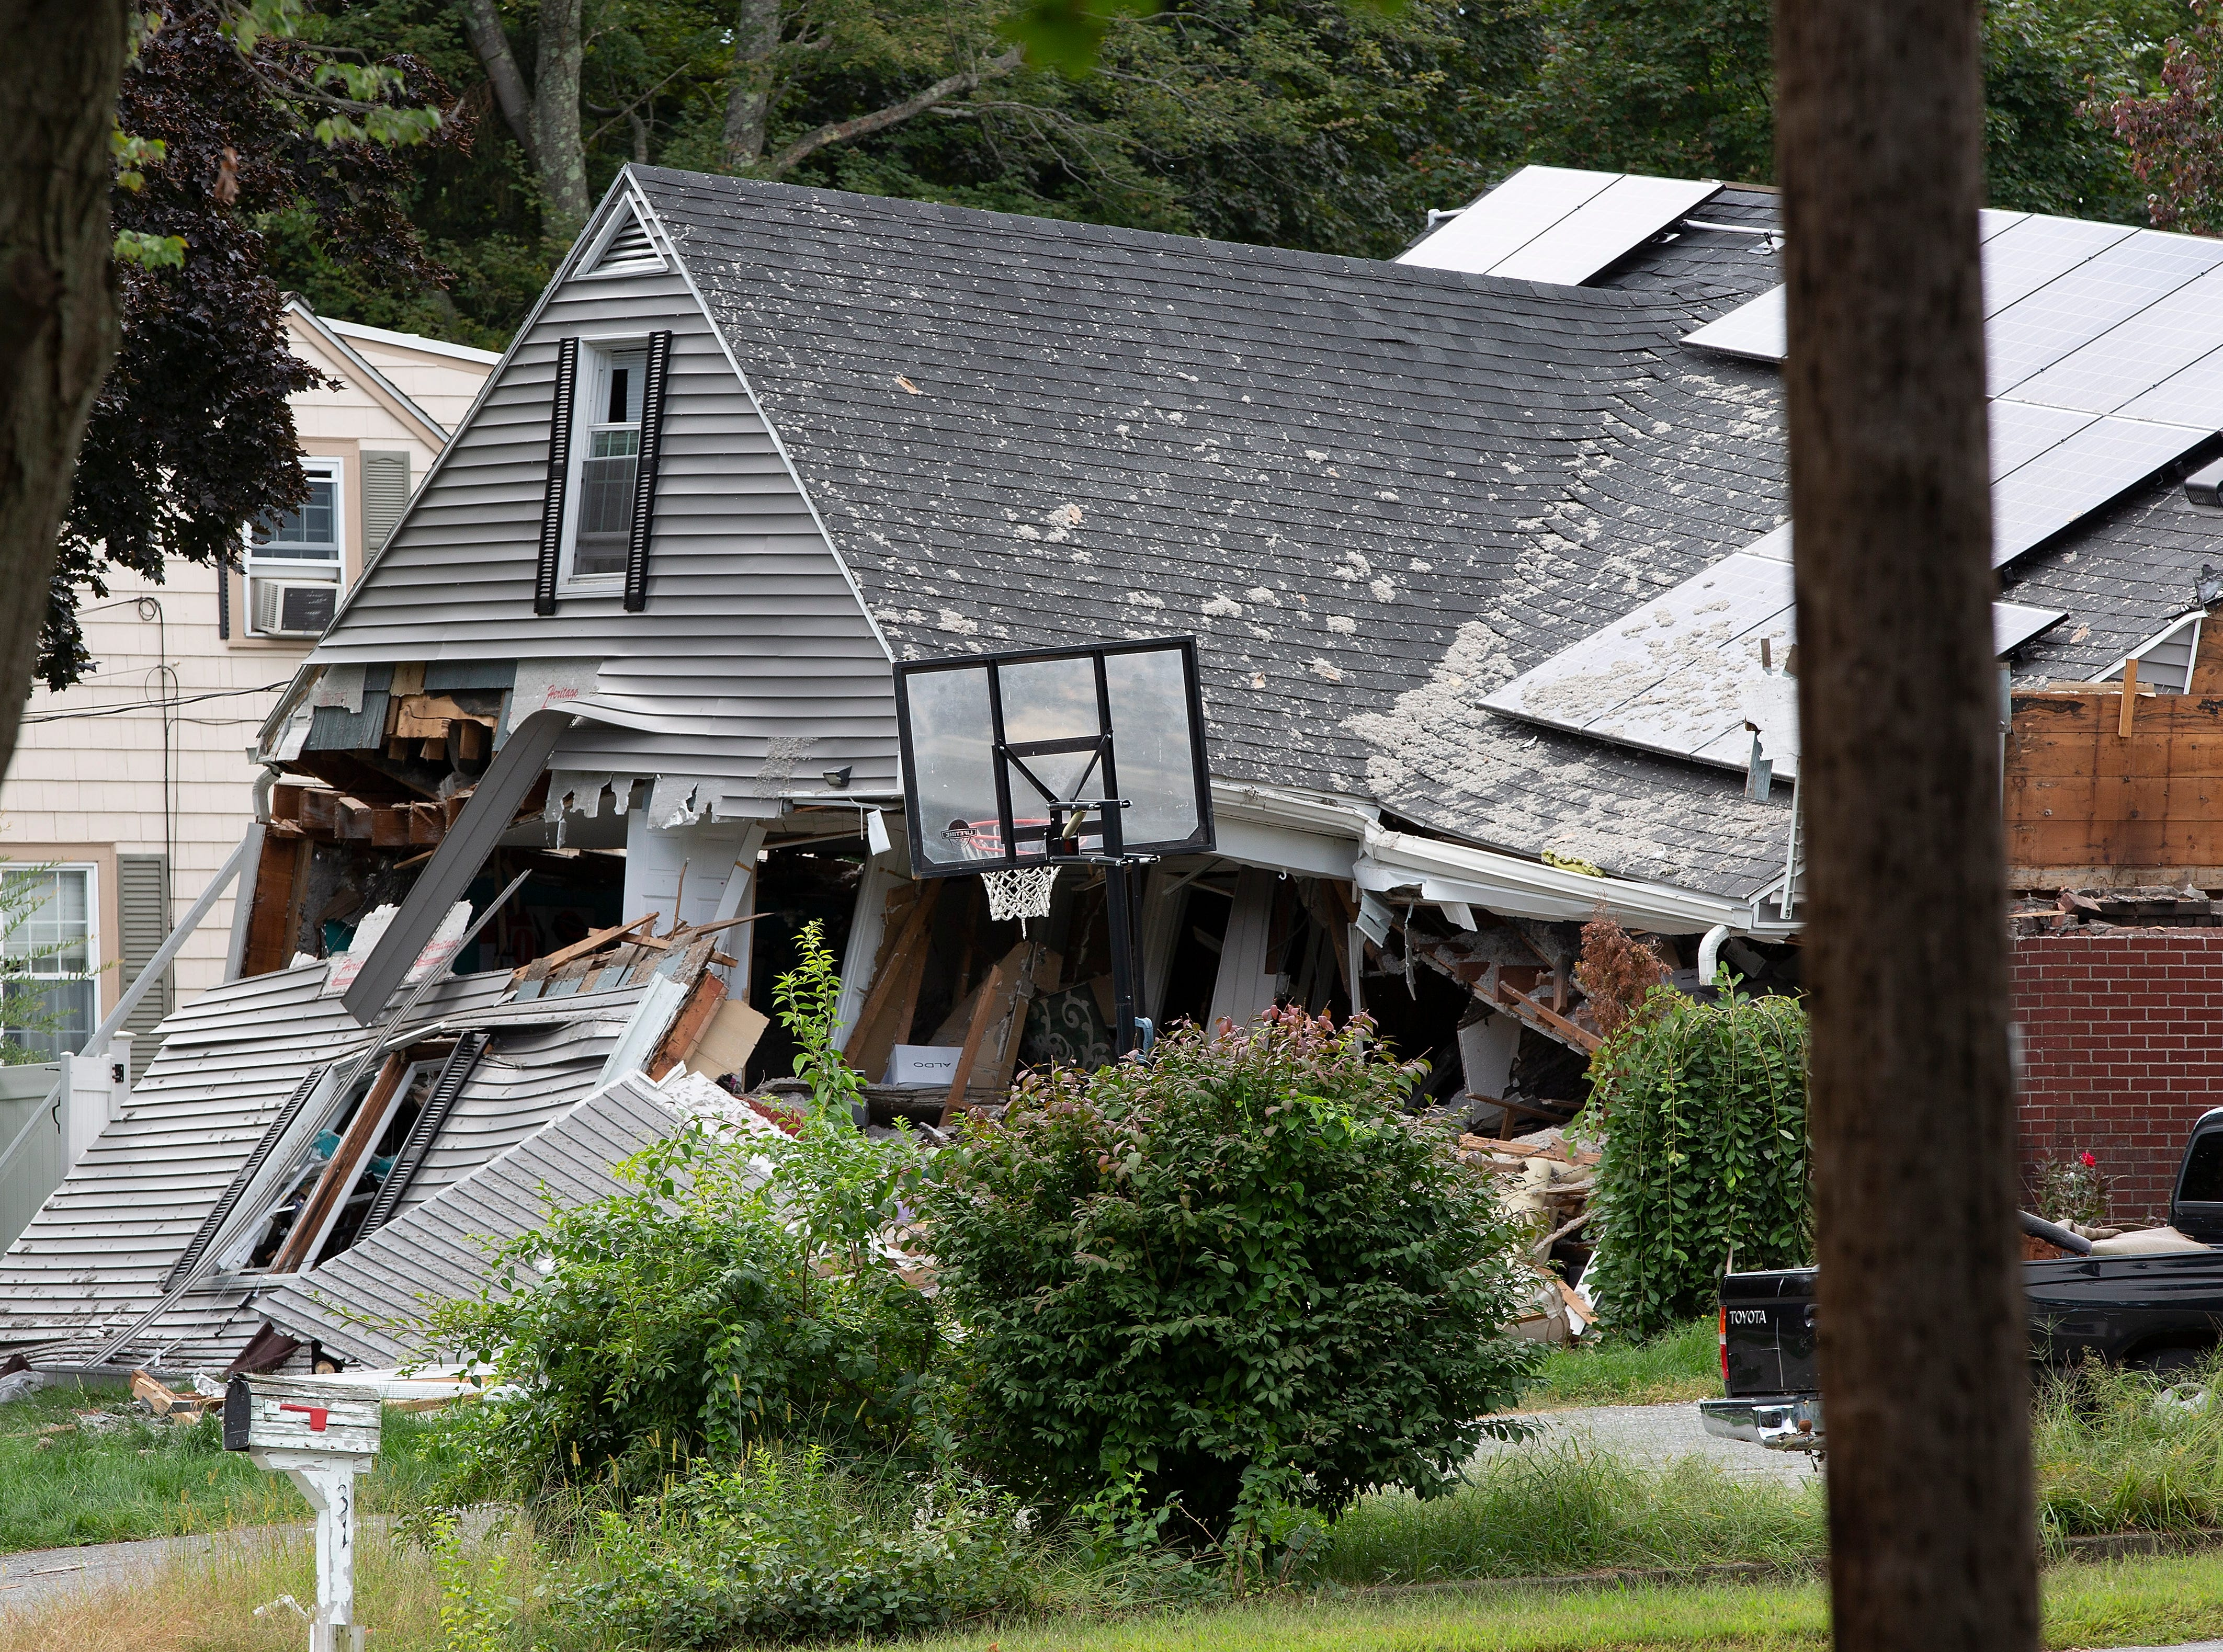 A destroyed home on Chickering Street where authorities say Leonel Rondon, 18, of Lawrence, Mass., was killed while seated in his car in the driveway, is seen, Friday. Dozens of houses in Lawrence, Andover and North Andover caught fire from the natural gas explosions.